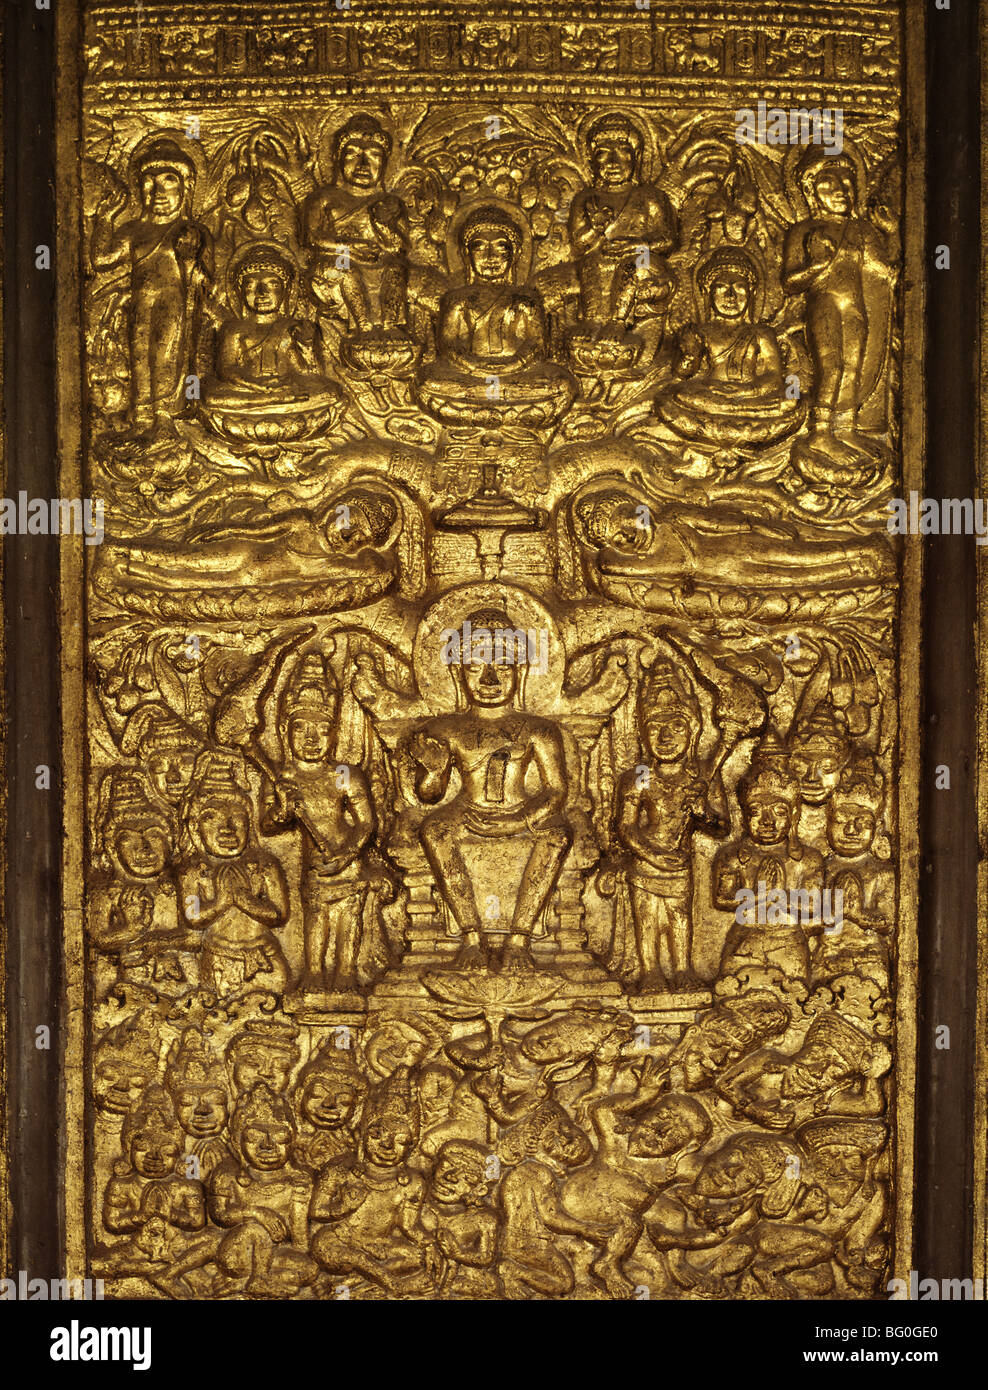 Davaravati bas relief showing episodes in the life of Buddha, now in Wat Suthat Bangkok, Thailand,. Southeast Asia, - Stock Image